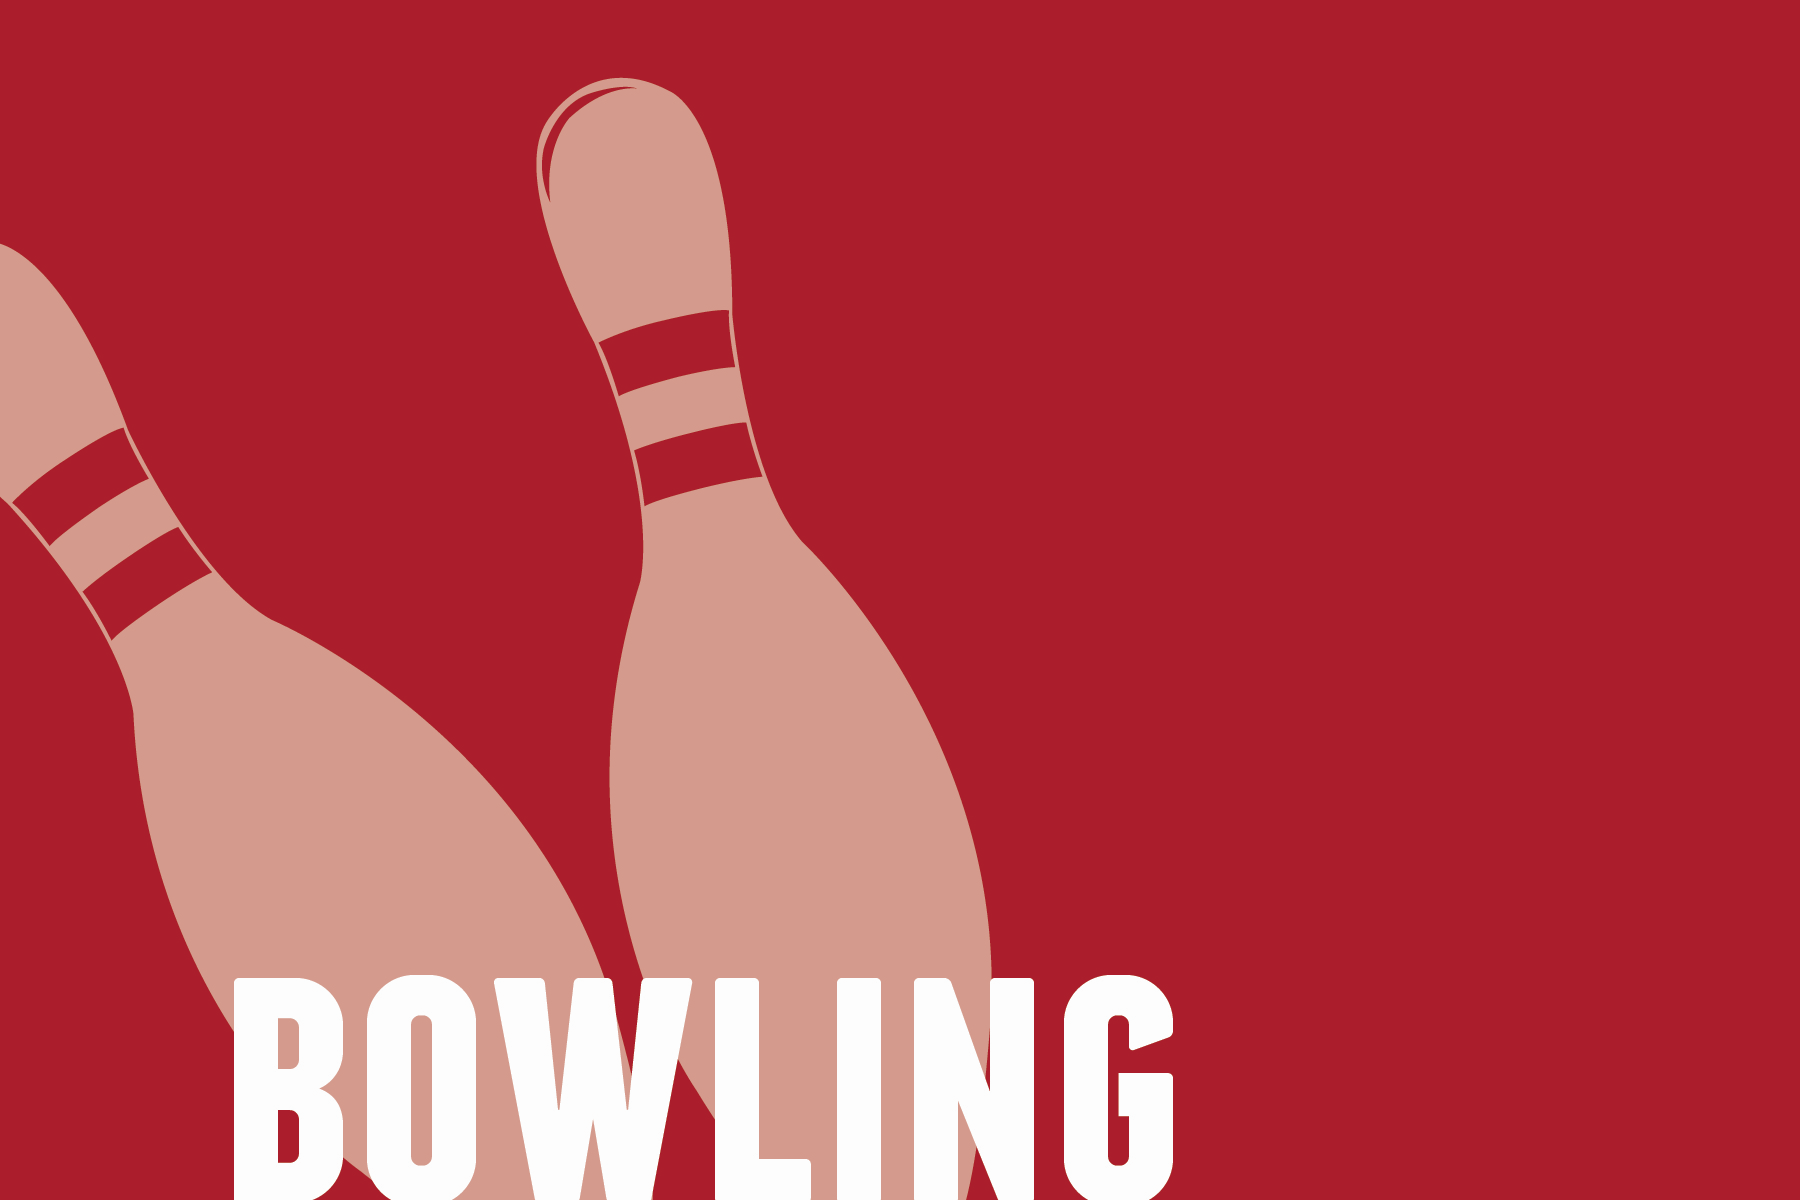 Vector Graphic of Bowling Pins